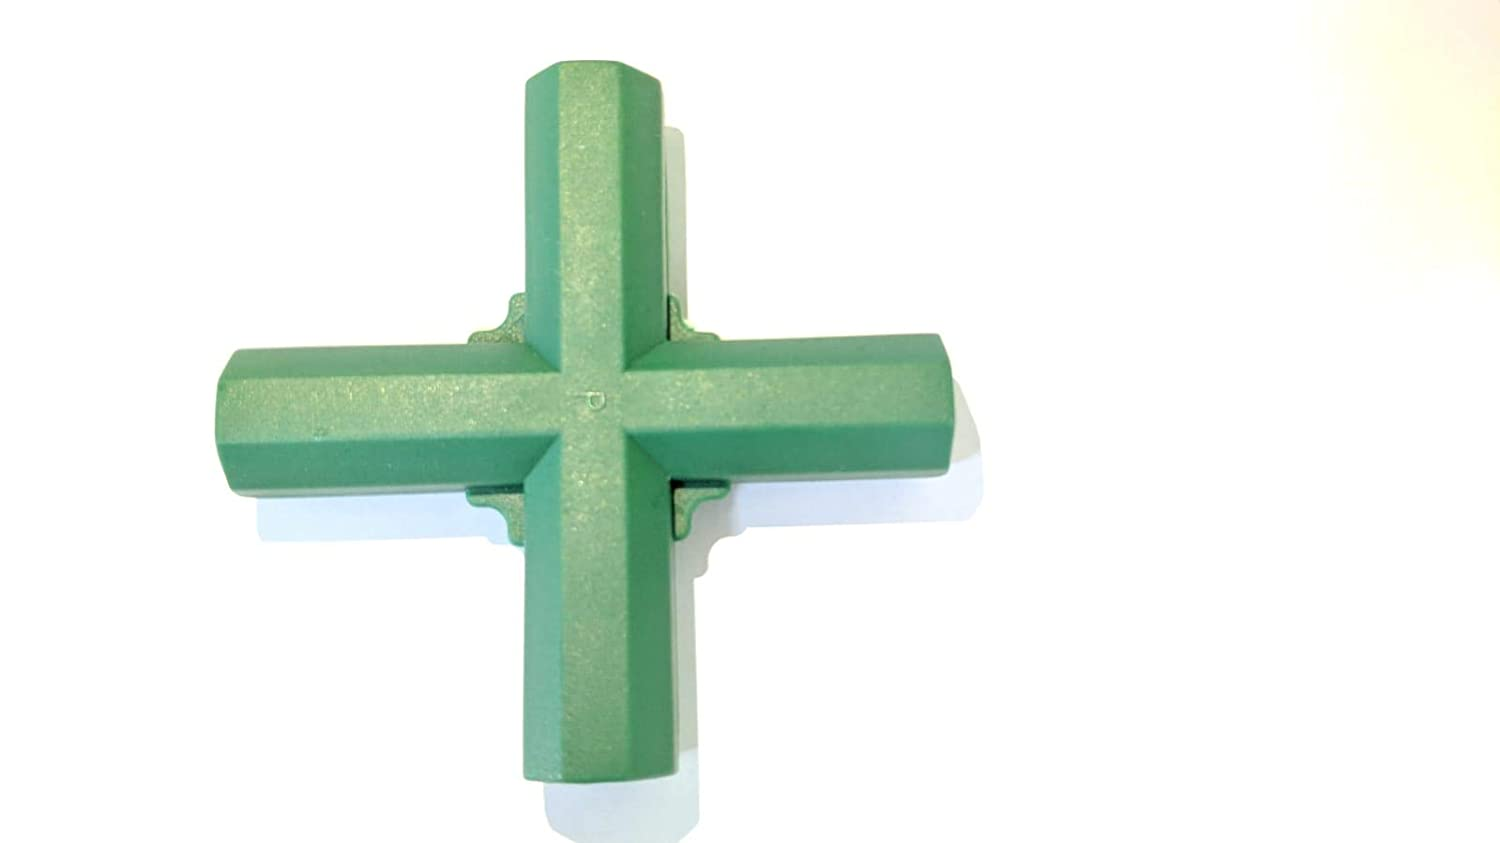 easynets 4 Way Cross Connector 4PCS (16mm in Diameter) Ideal for our Plastic Coated Canes